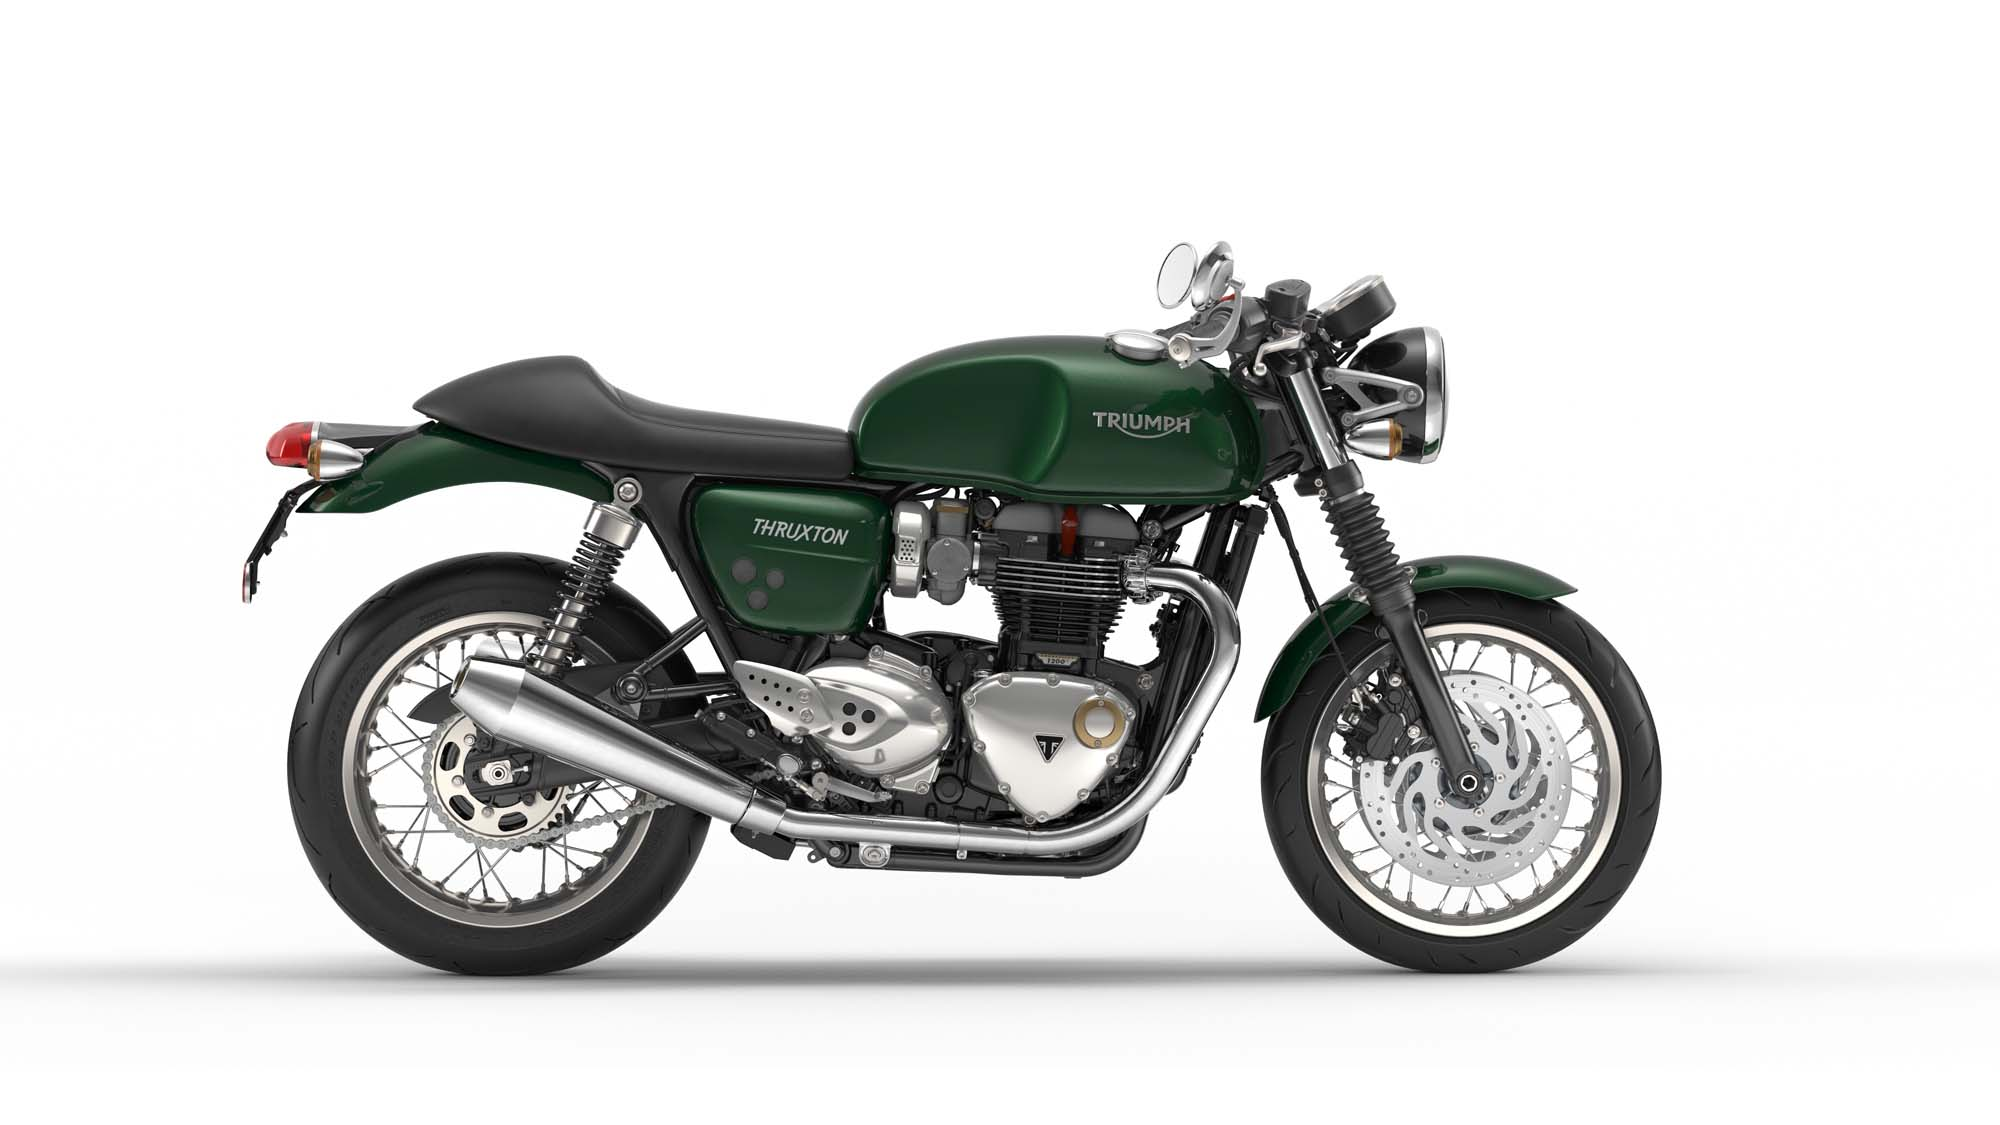 gebrauchte triumph thruxton 1200 motorr der kaufen. Black Bedroom Furniture Sets. Home Design Ideas